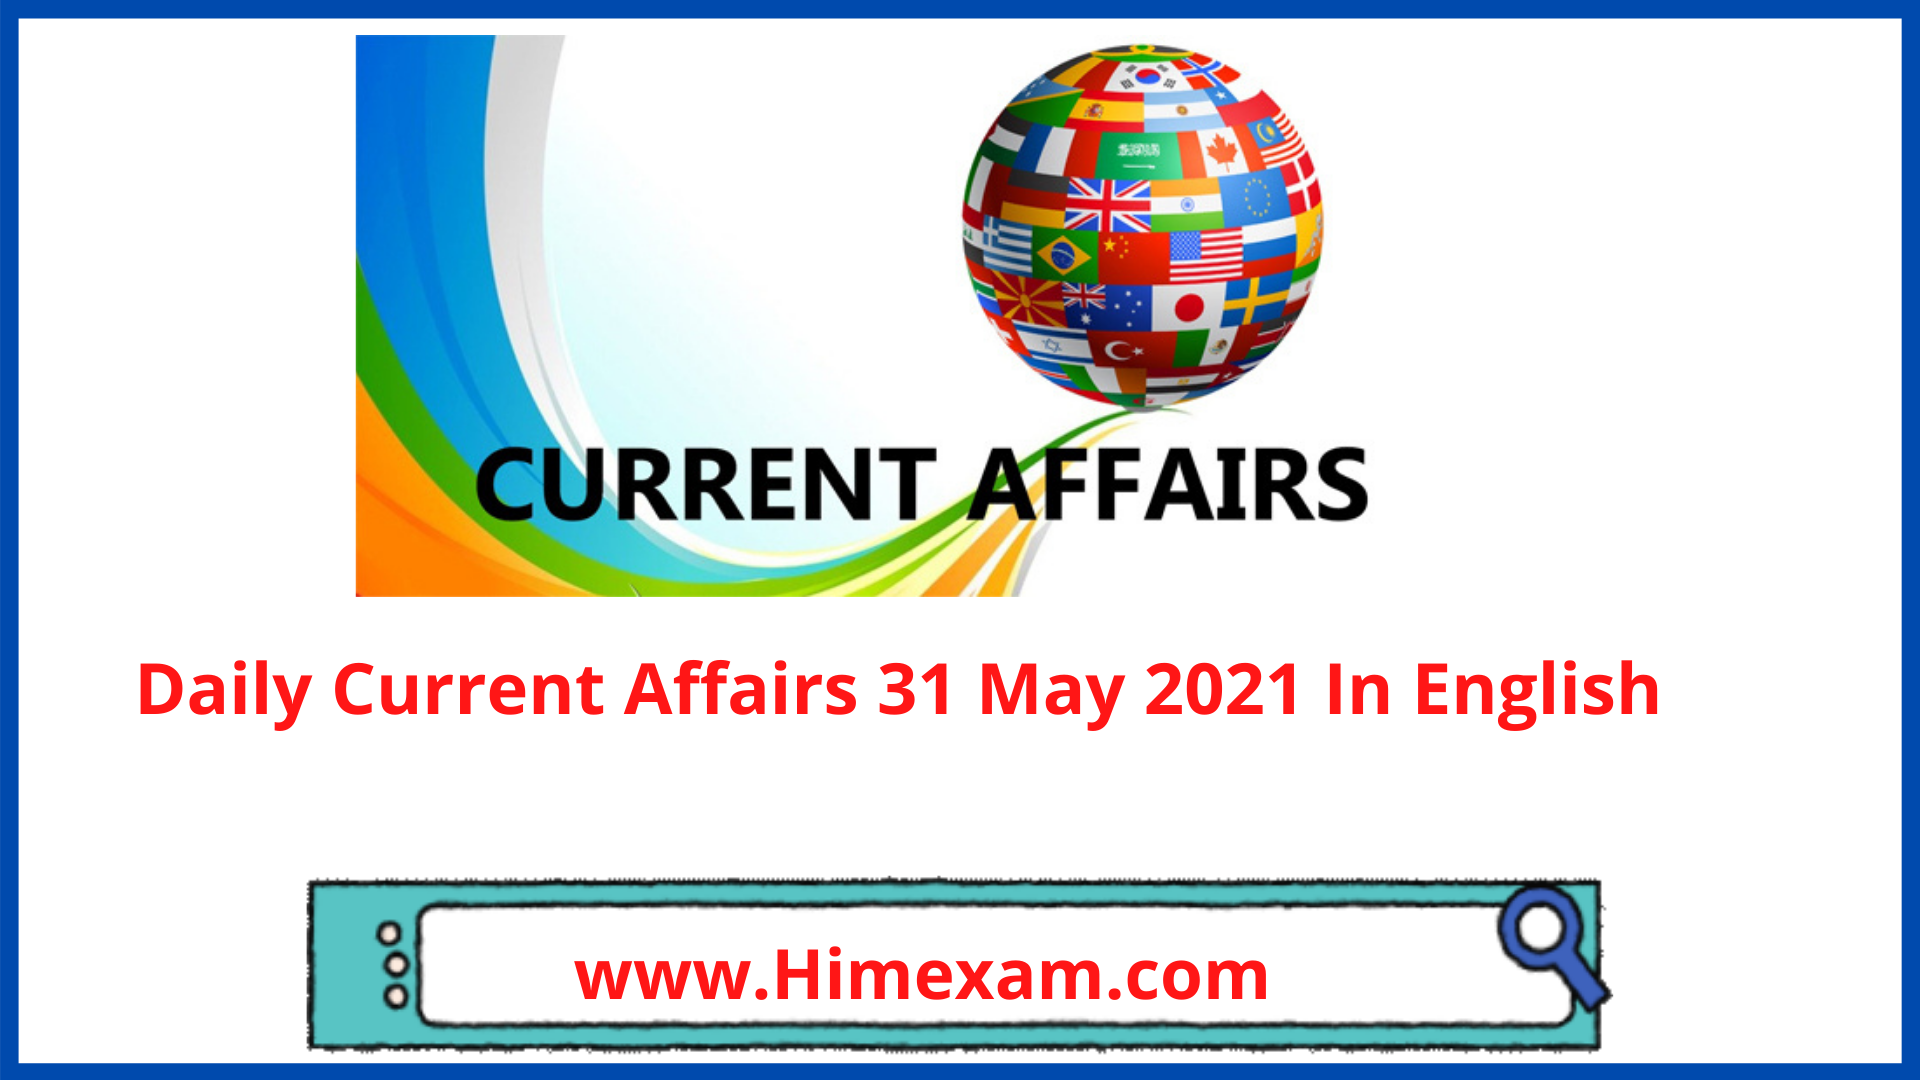 Daily Current Affairs 31 May 2021 In English